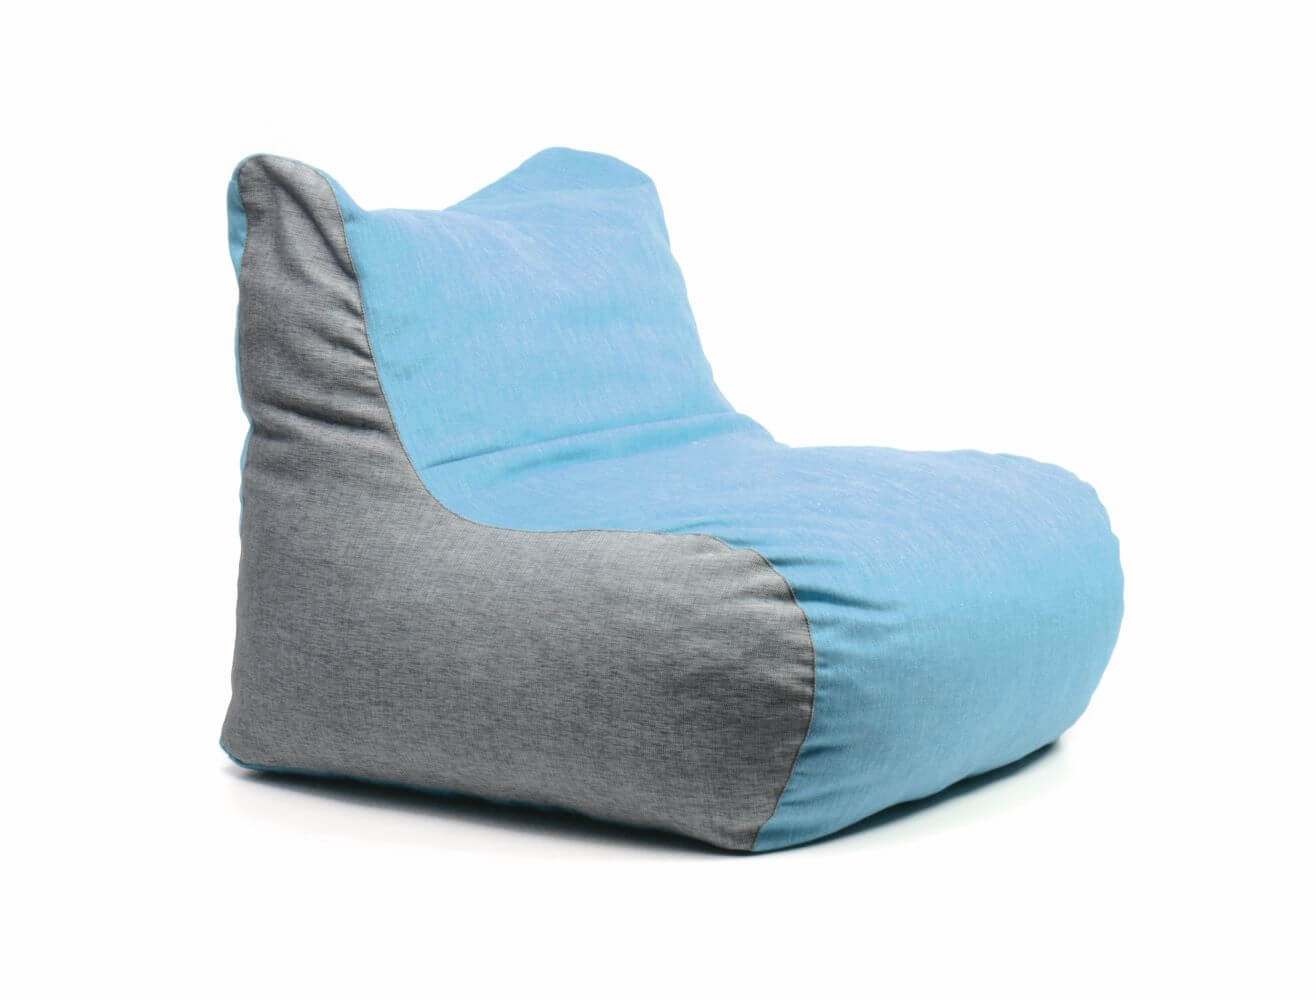 Chair bag in blue with grey sides, front 45 degree view - a more structured beanbag